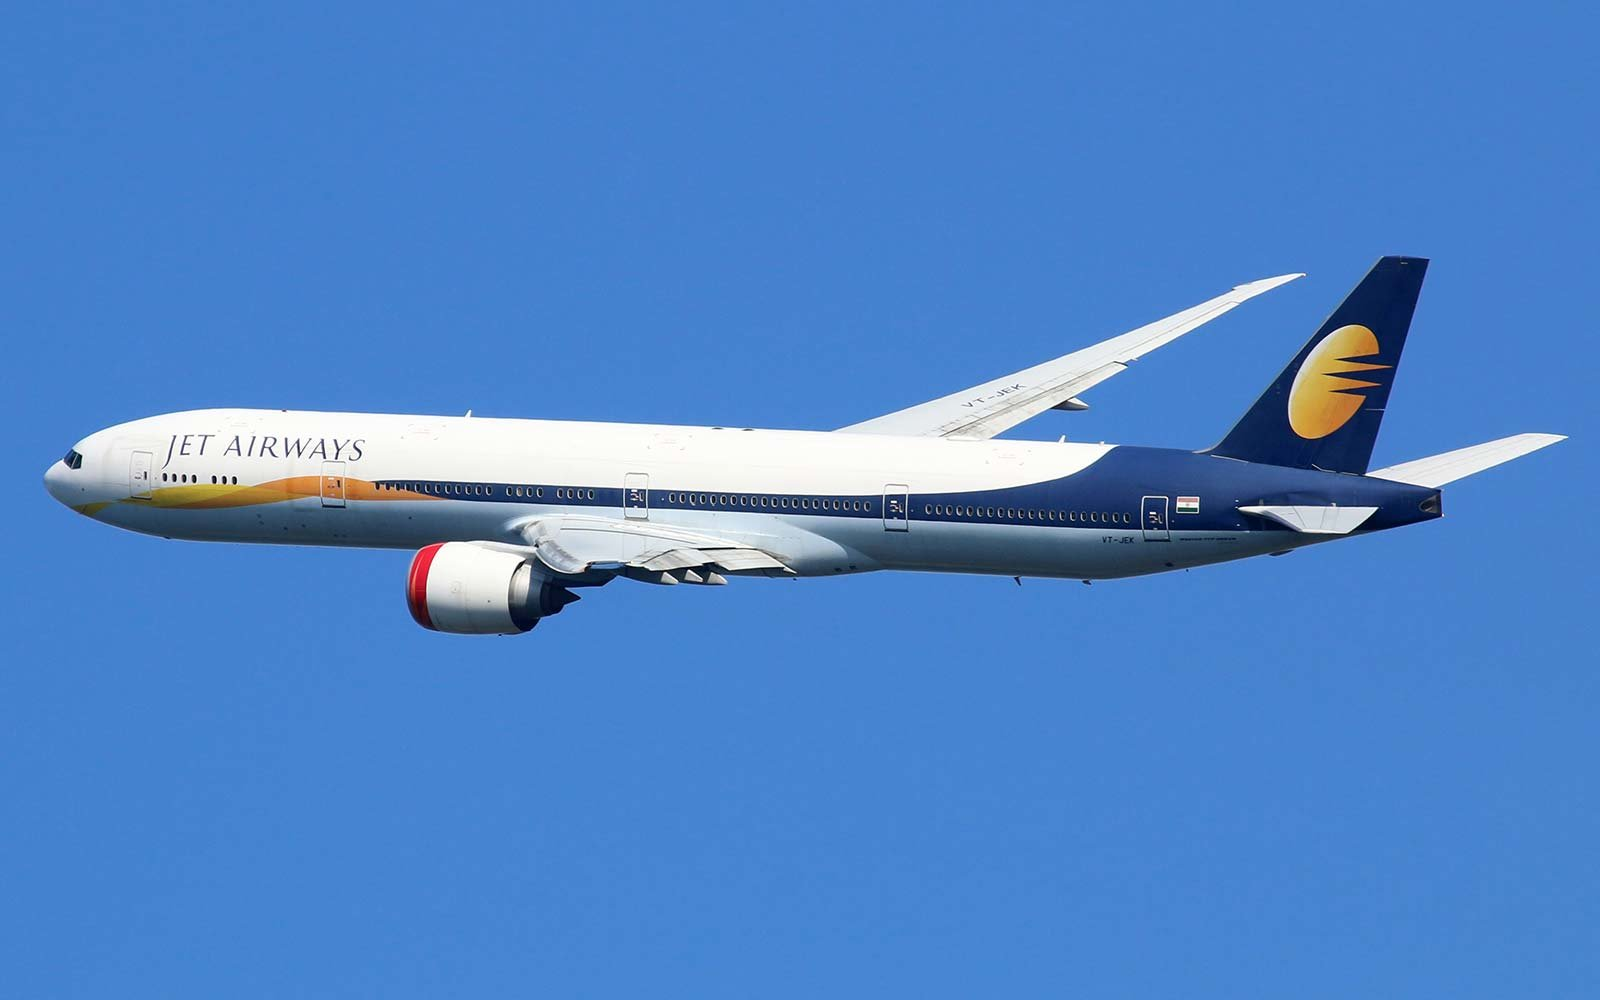 Jet Airways Boeing 777-300ER India airplane